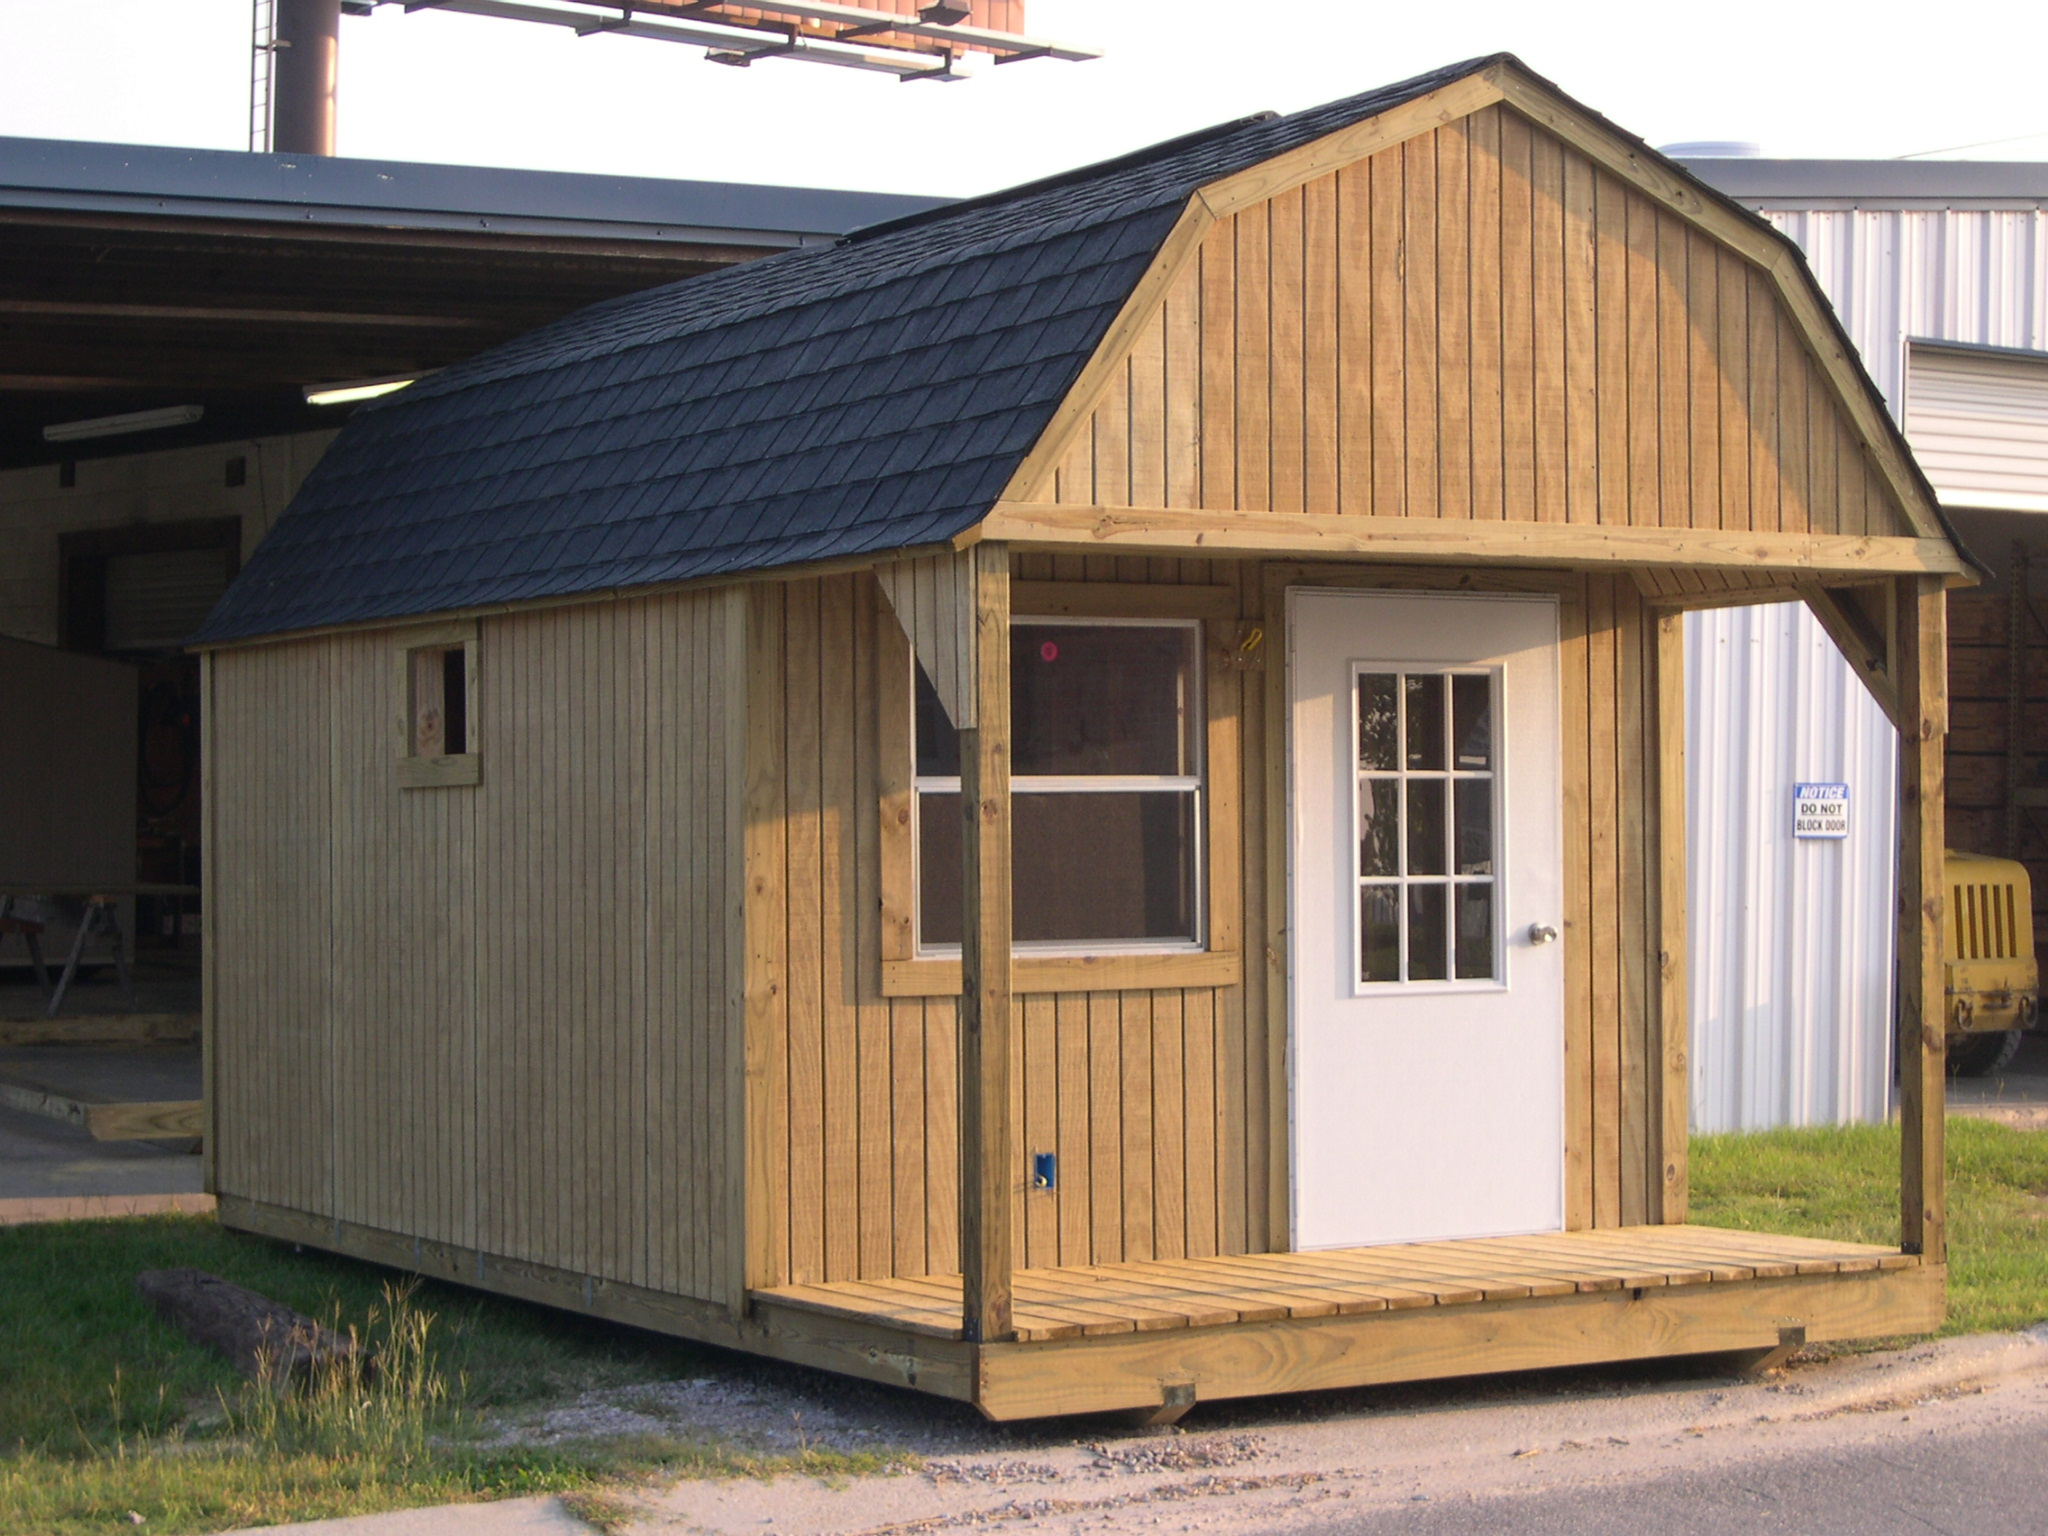 Pictures of storage sheds type for Garden shed pictures